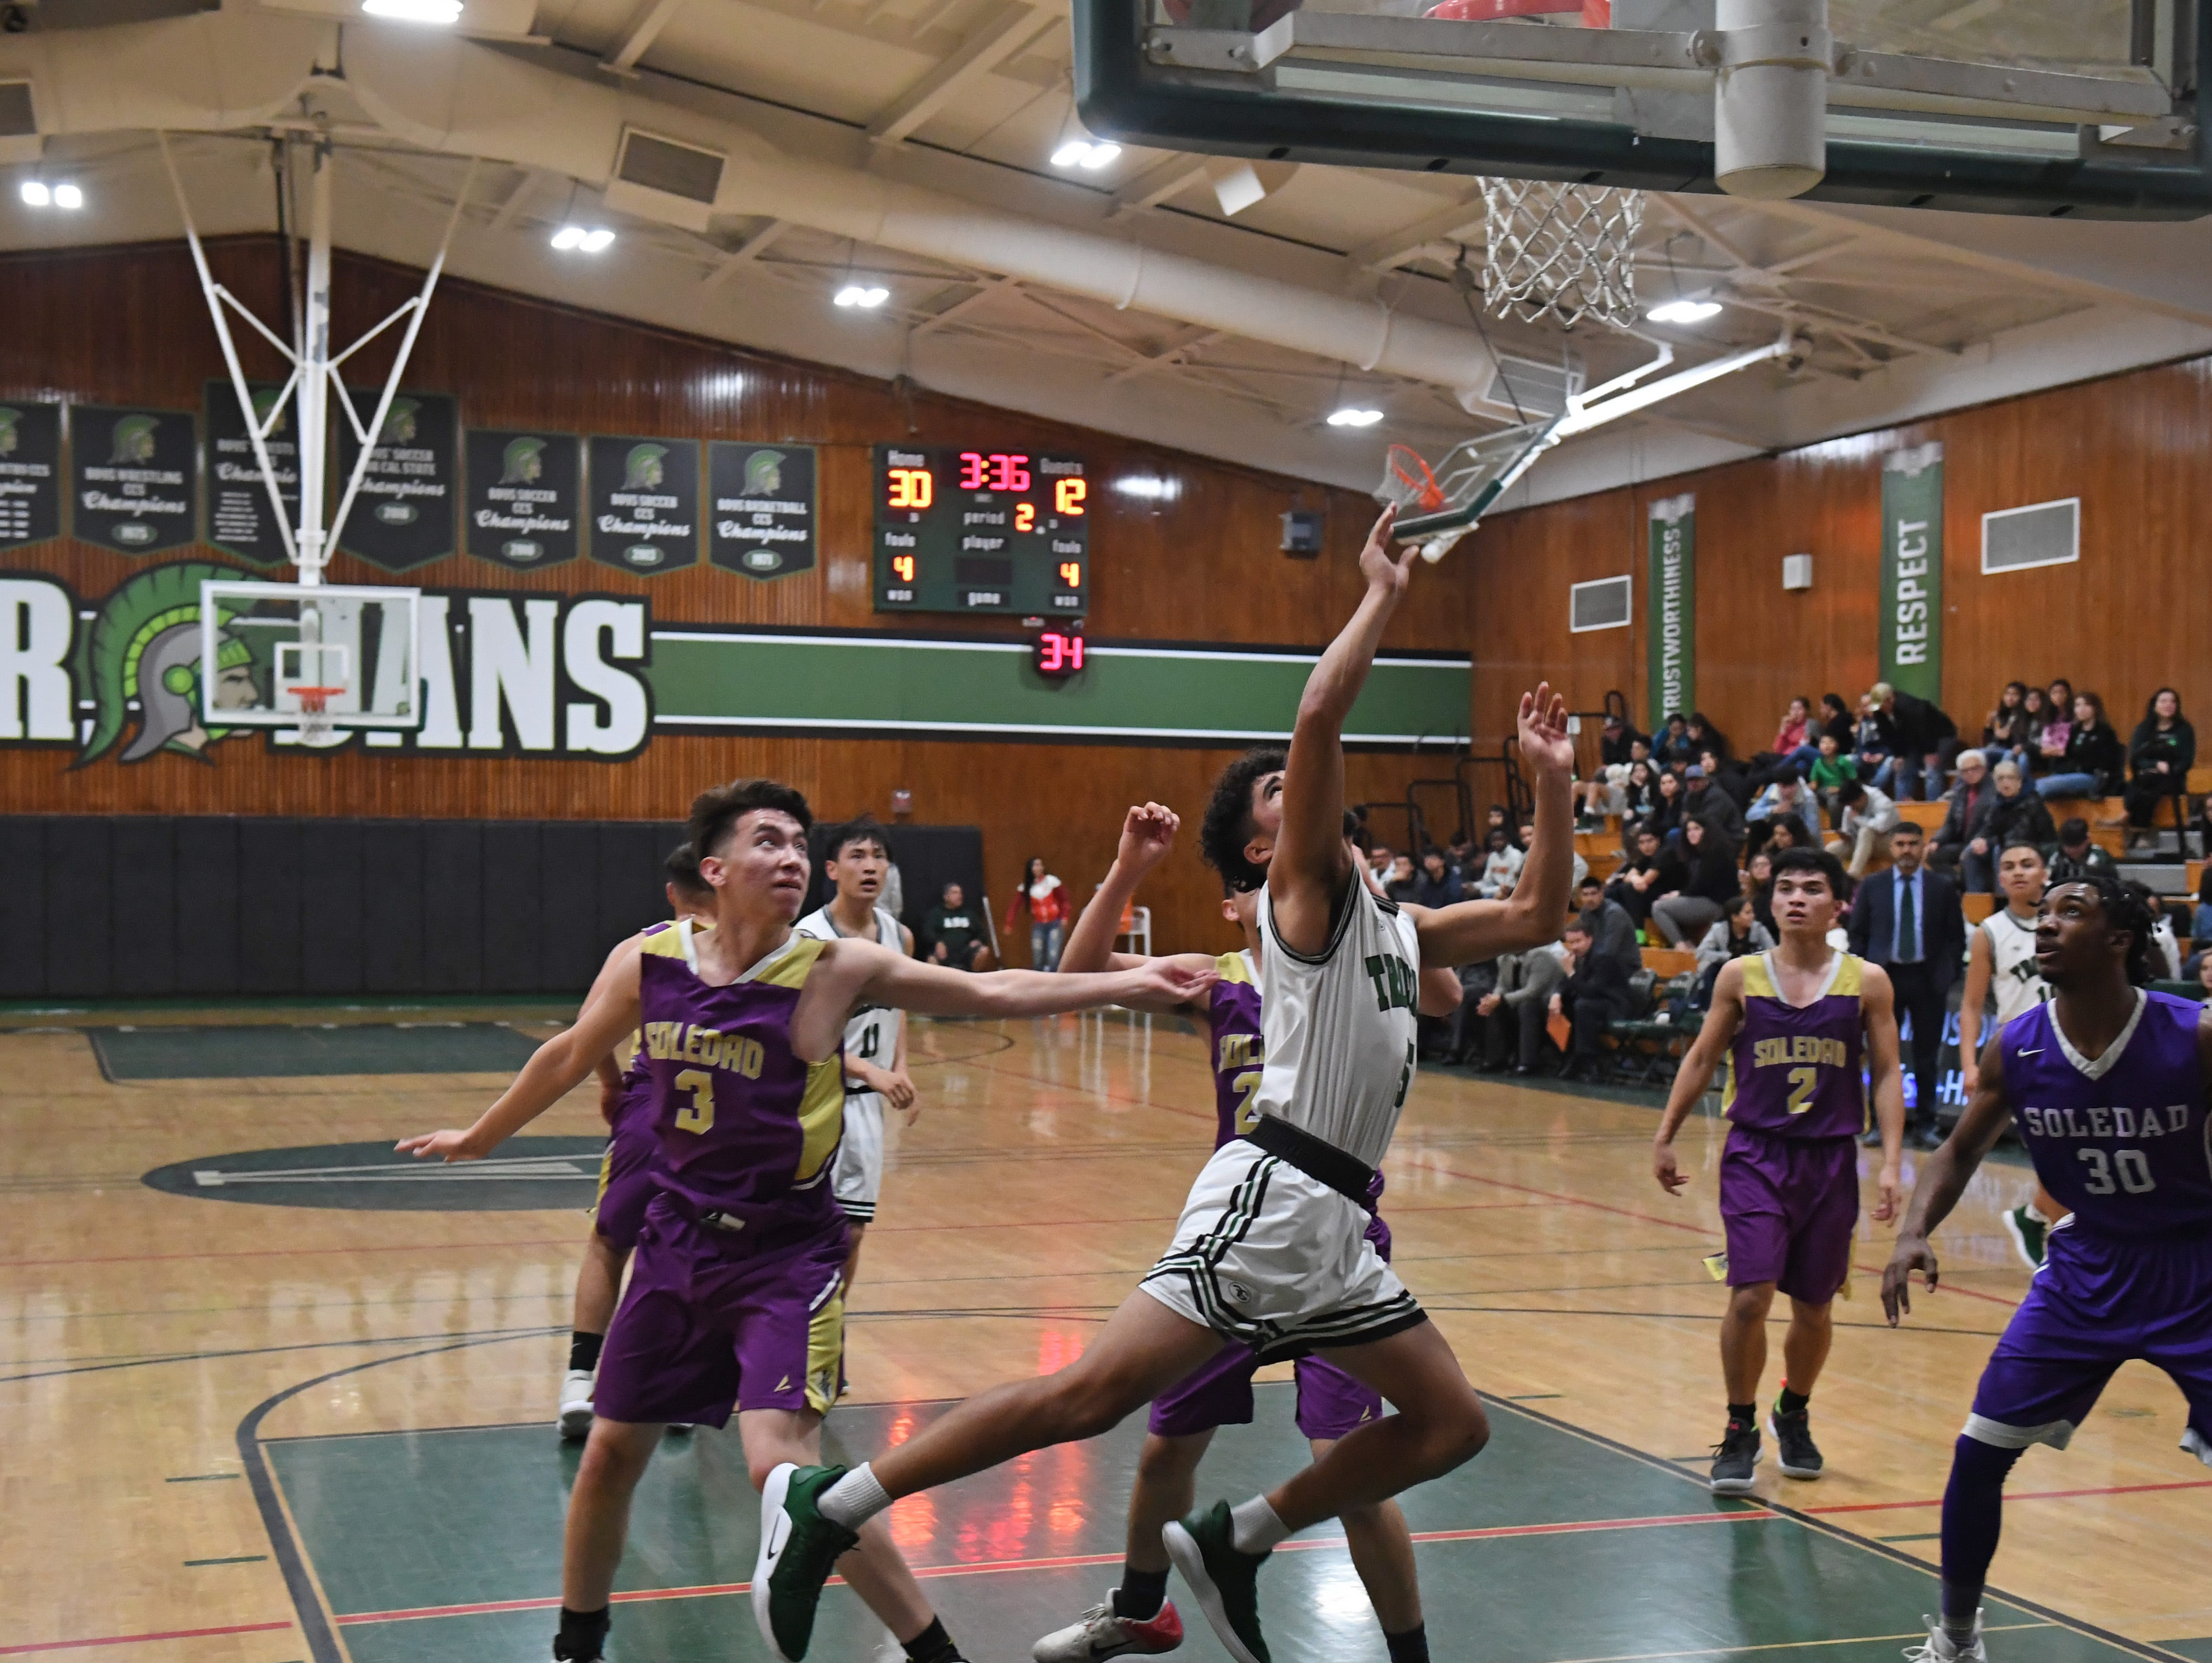 Alisal forward Israel Corona (5) draws a foul in the second quarter.